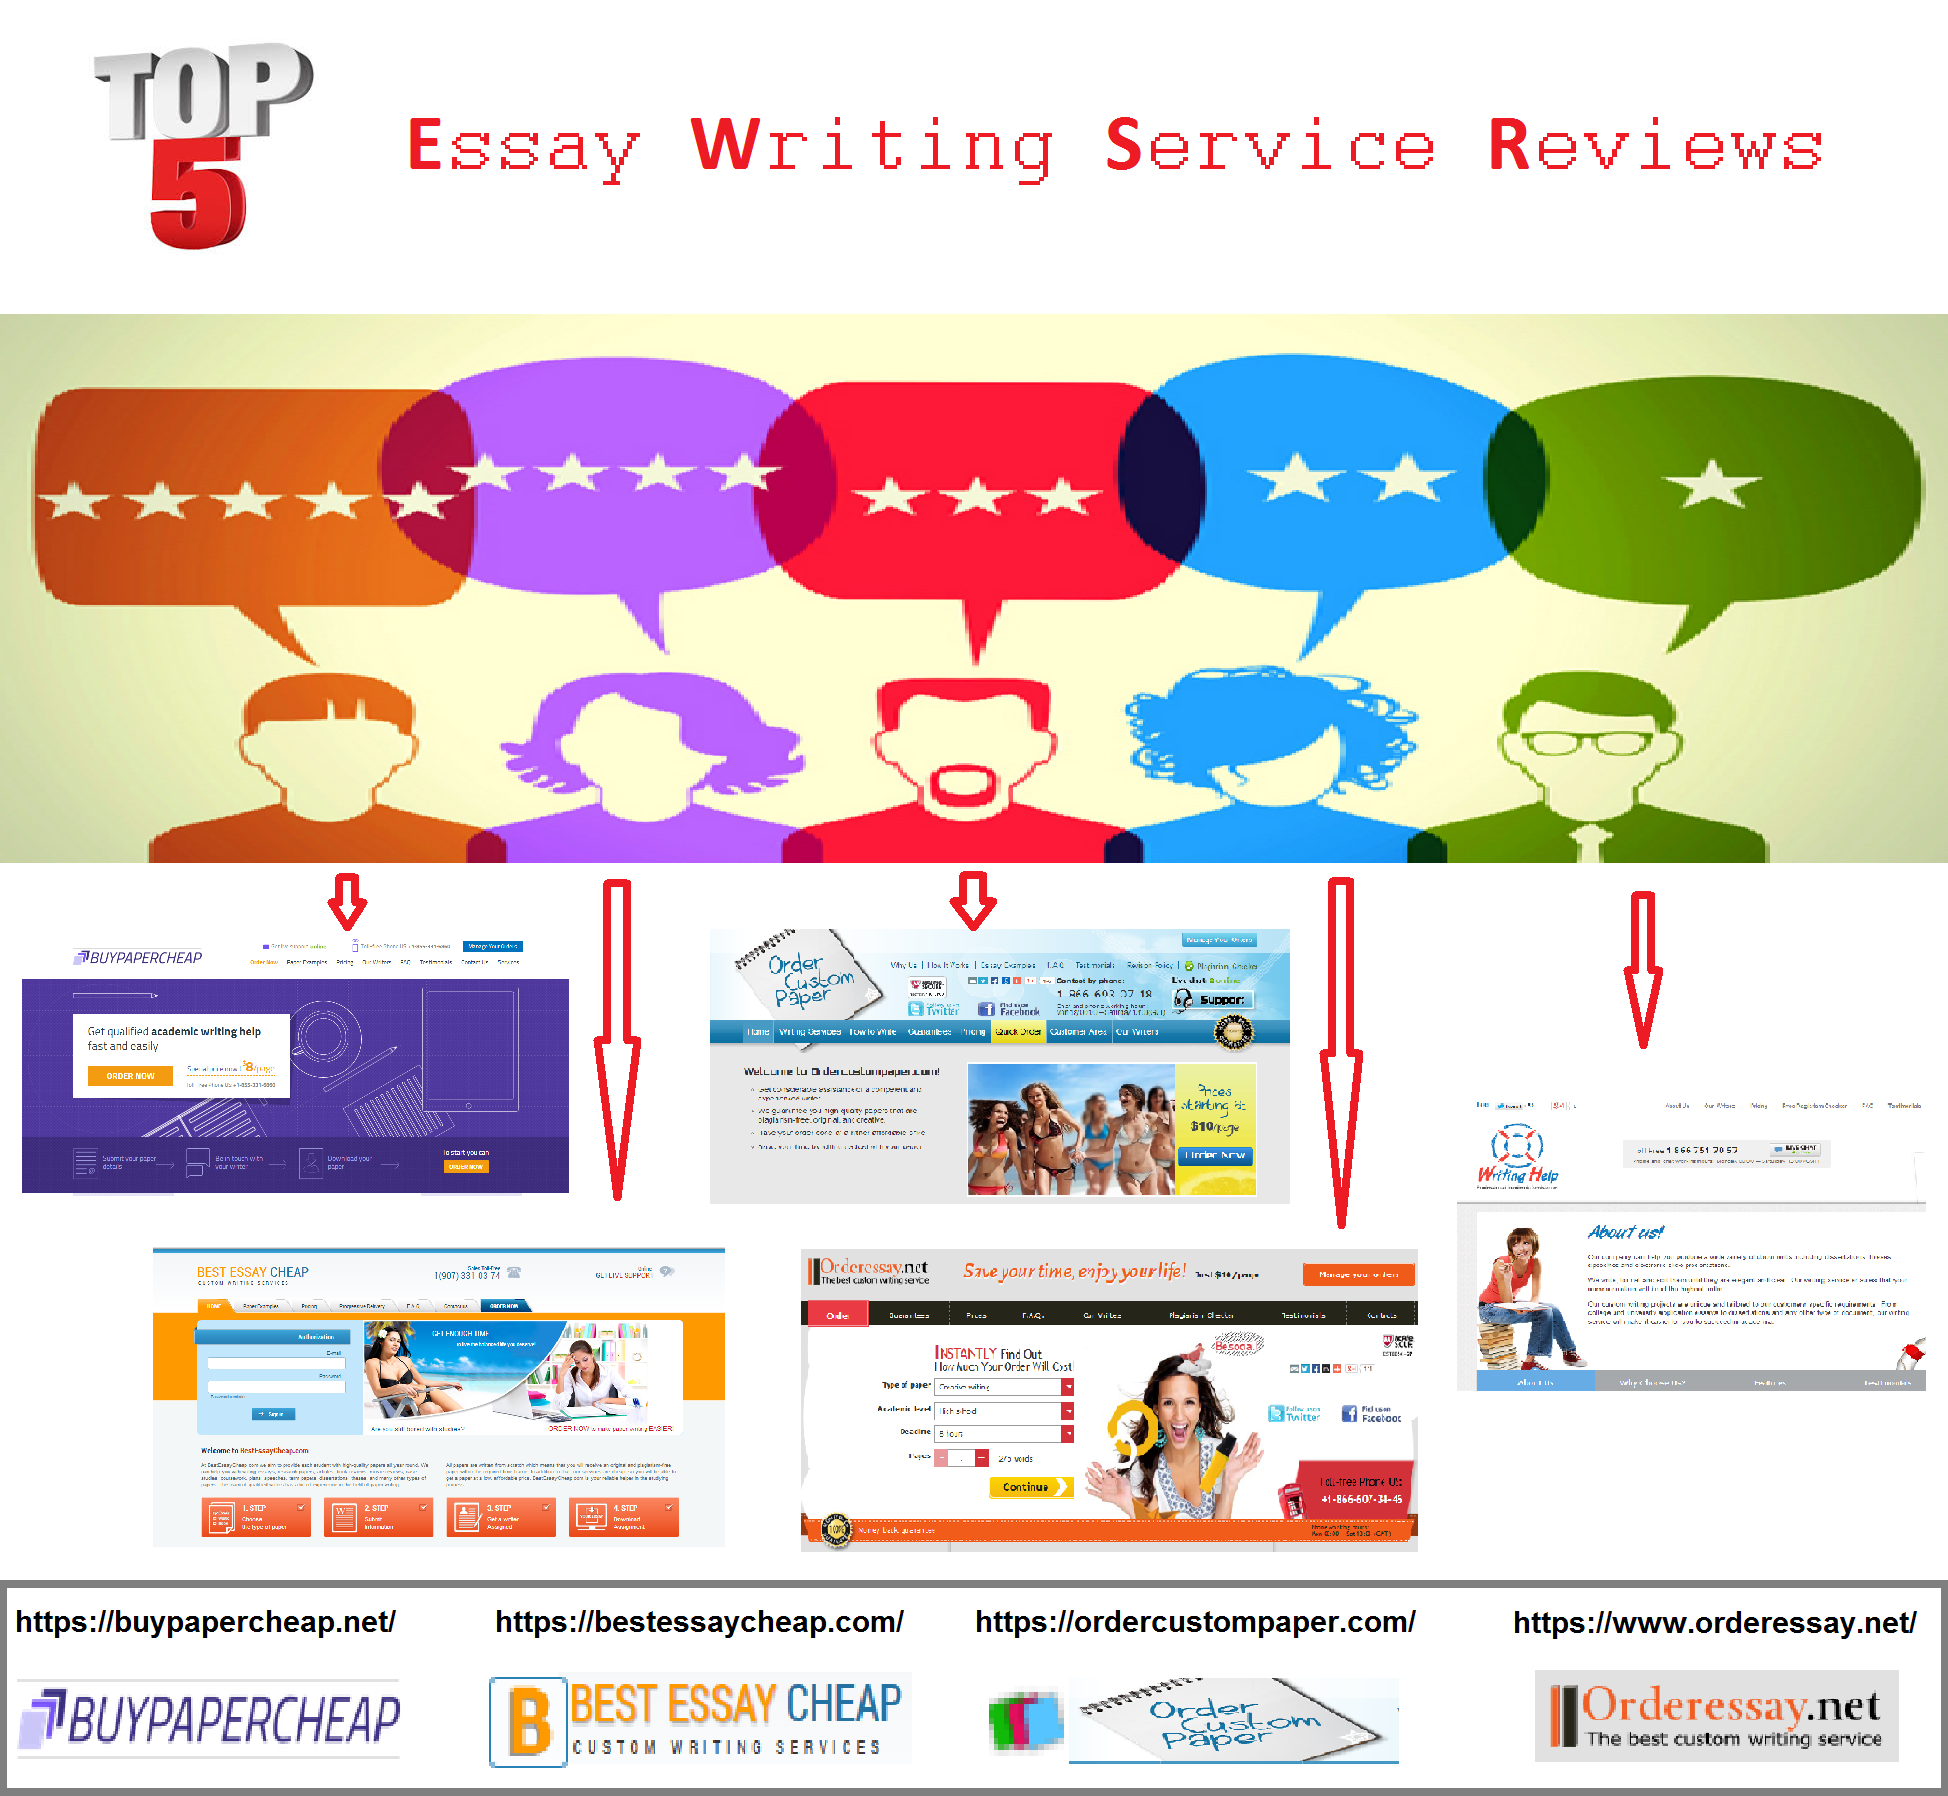 018 Custom Essay Service Writing Services From Best Essays Paper Sites Company Reviews Ideas Of Sale Discount Br Beautiful Are Legal Cheap Canada Full